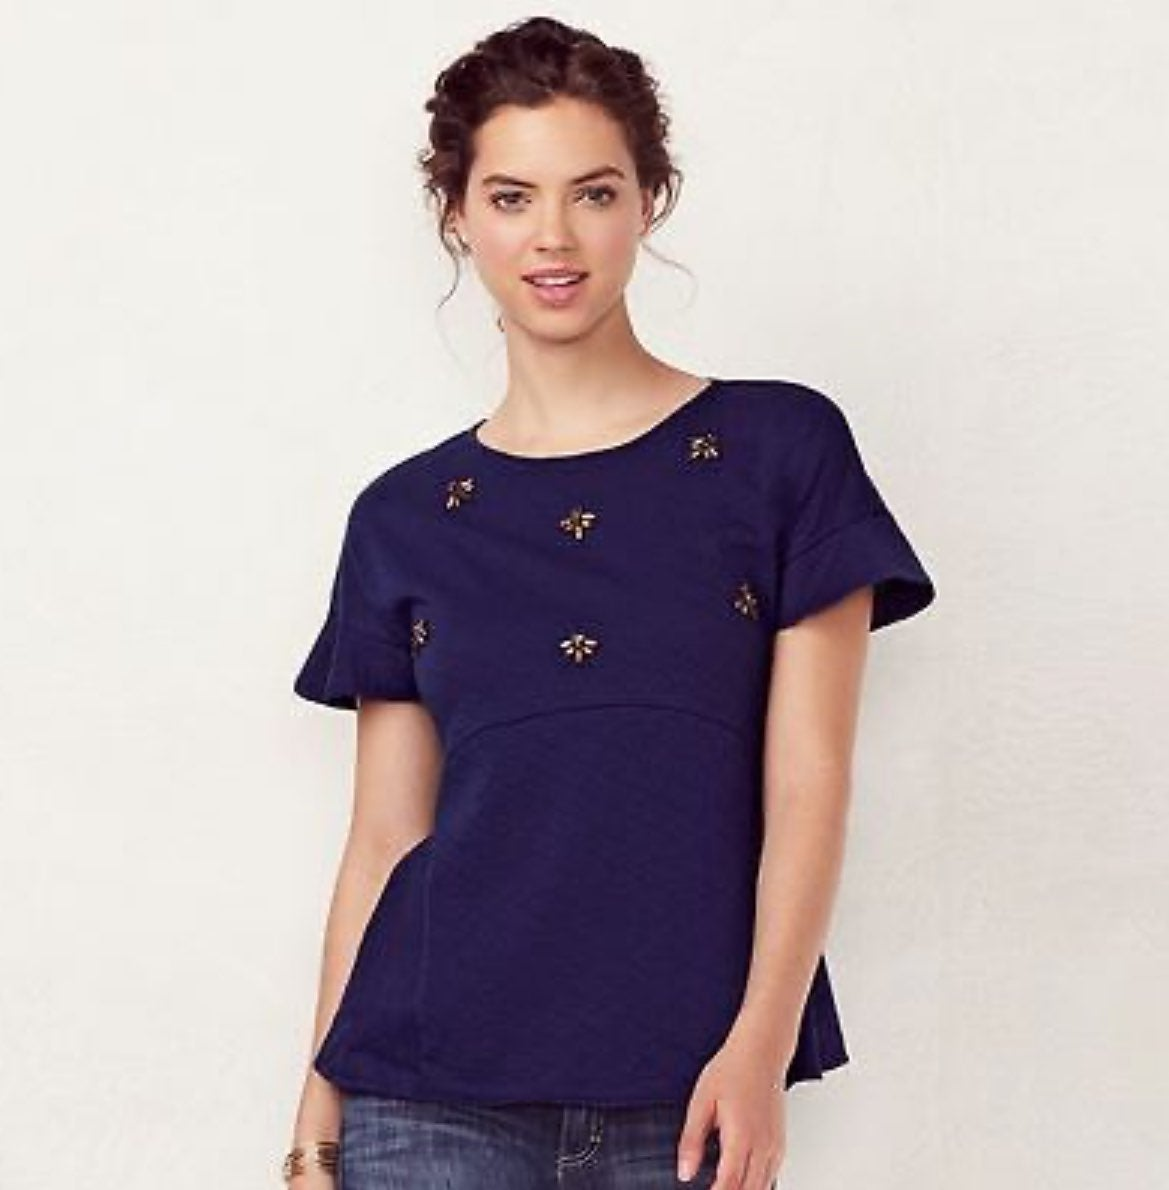 Lauren Conrad Bee Top